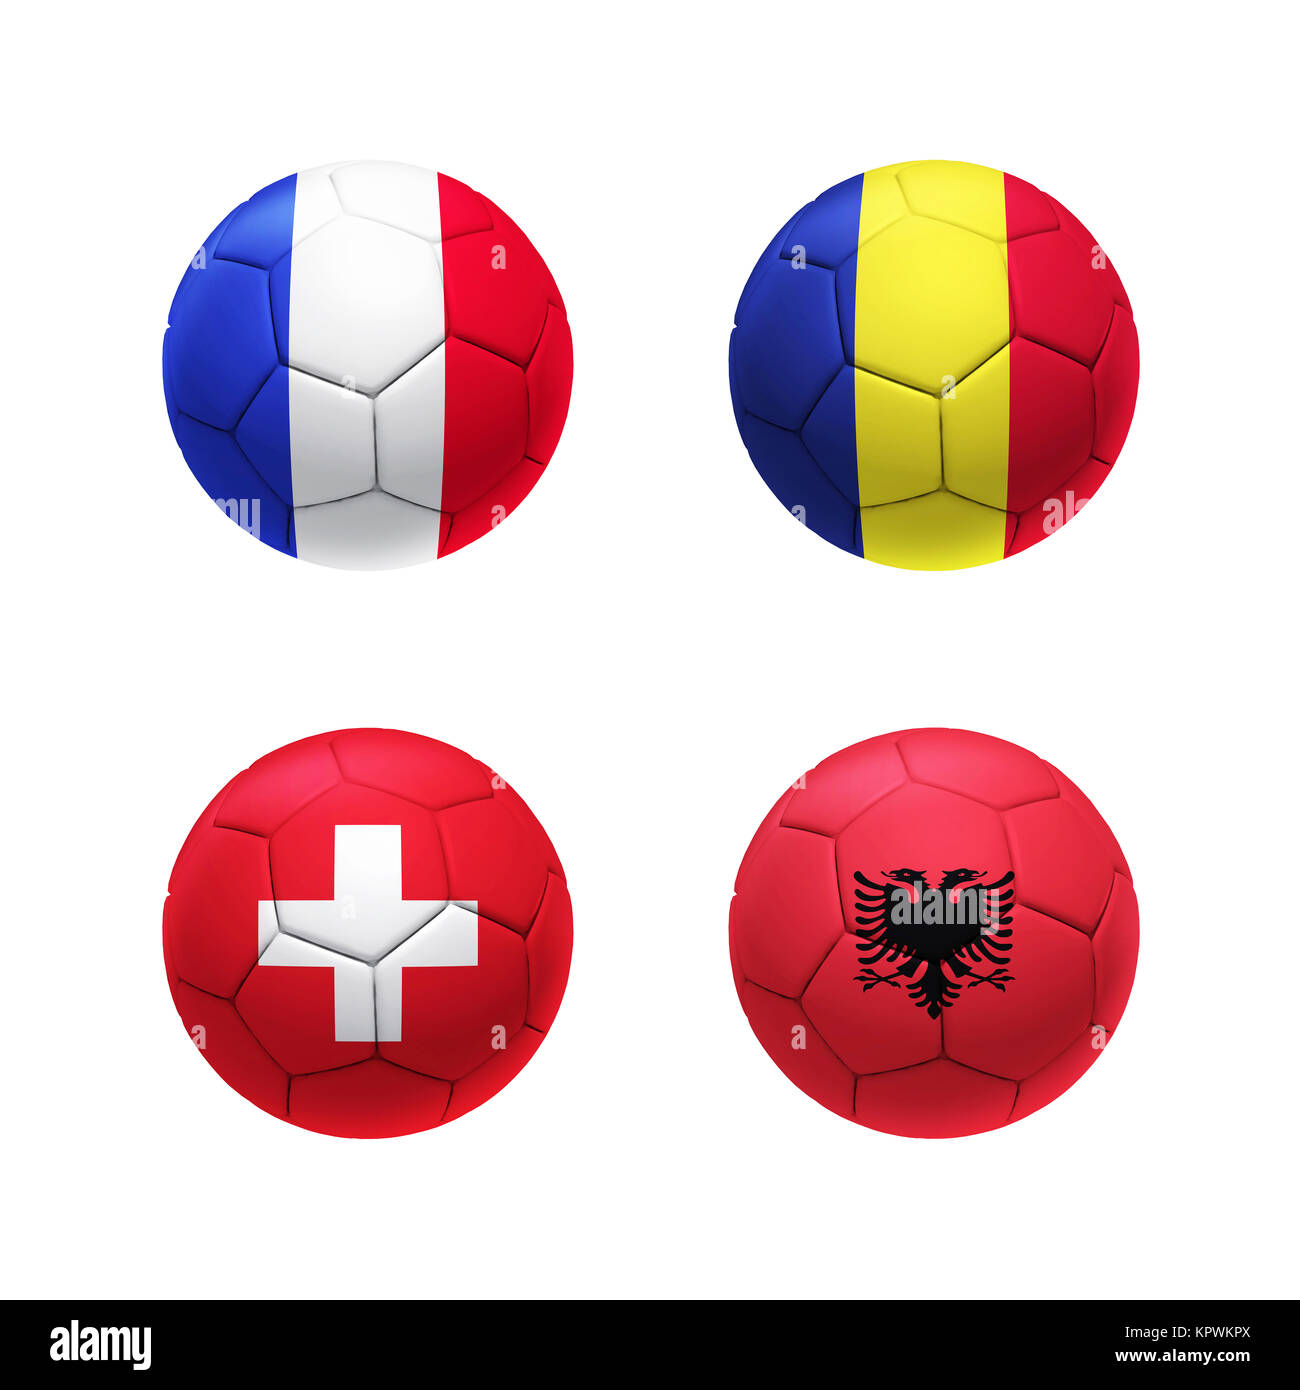 3D soccer ball with group A teams flags - Stock Image